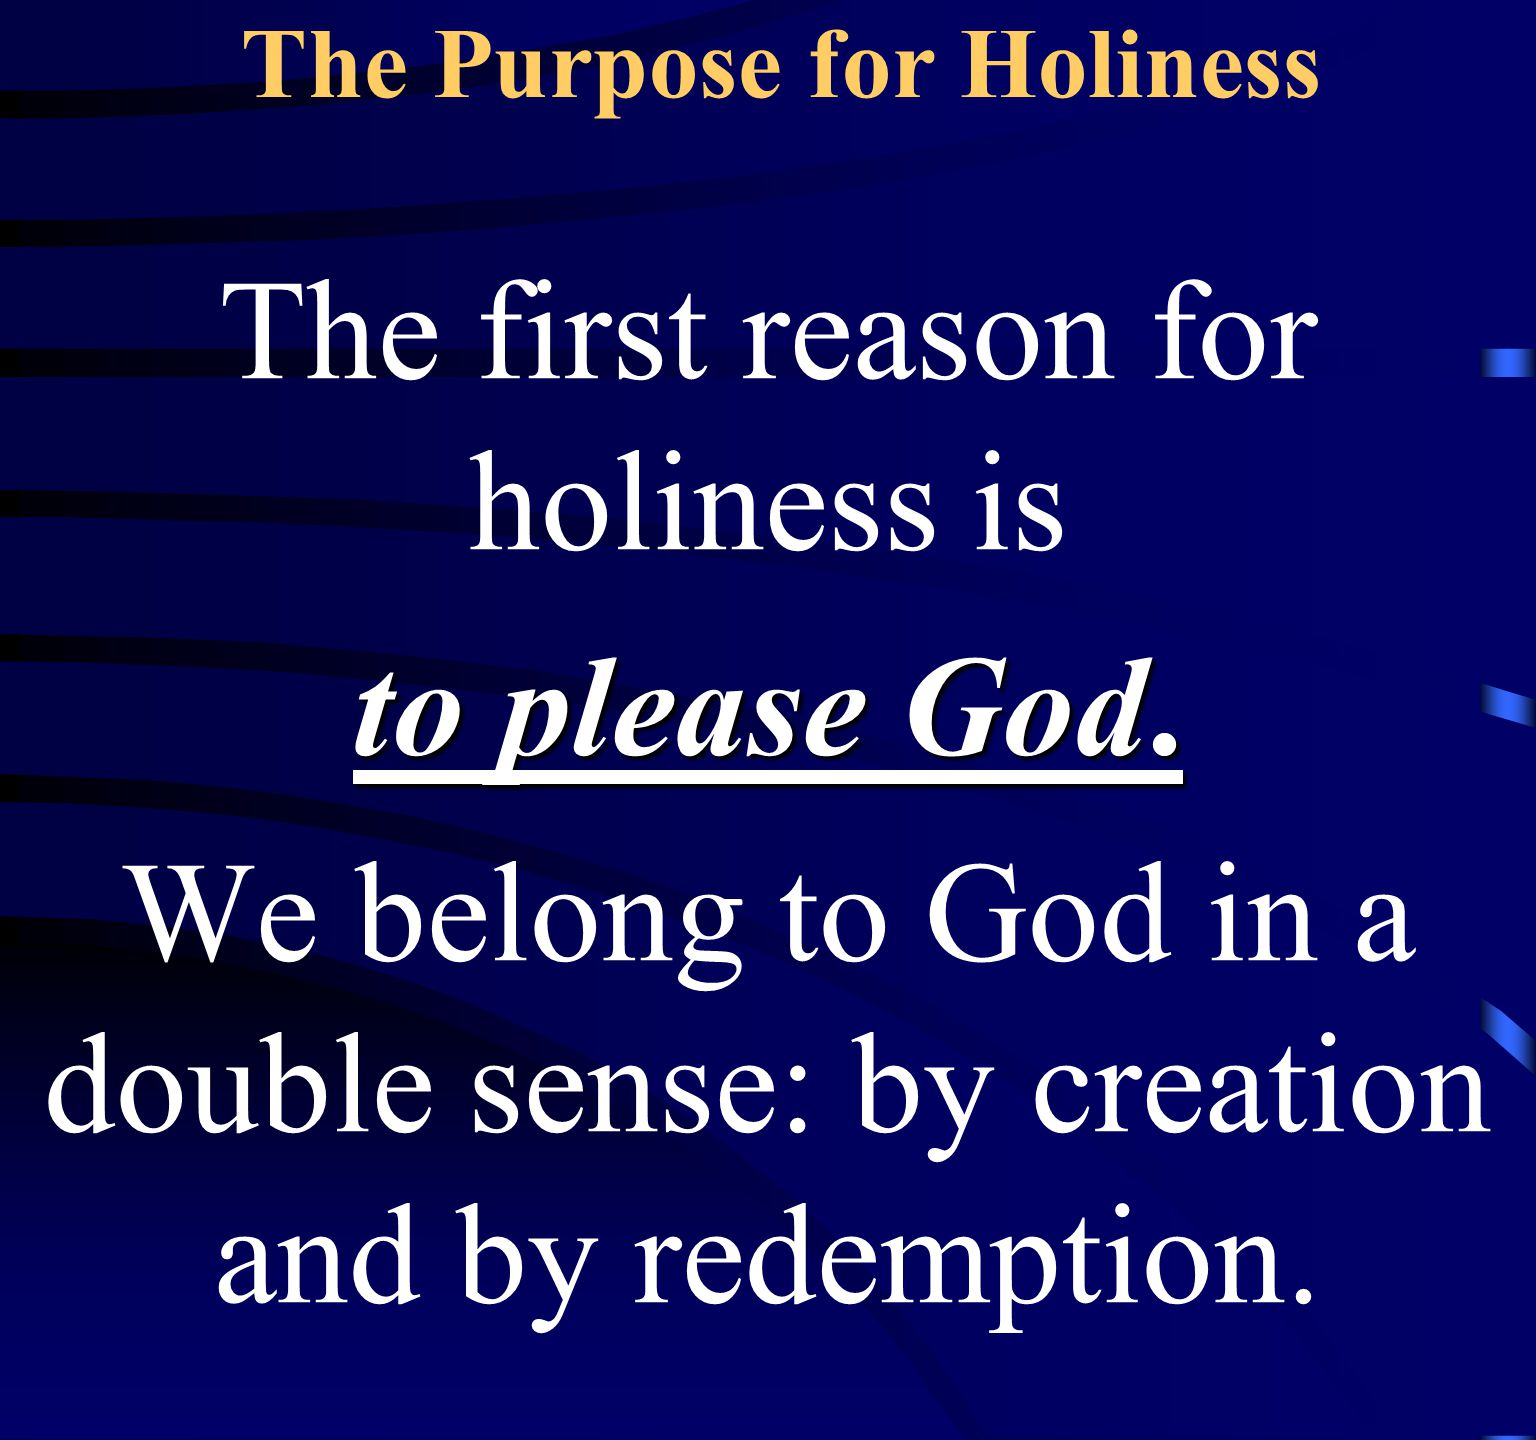 The Purpose for Holiness The first reason for holiness is to please God.